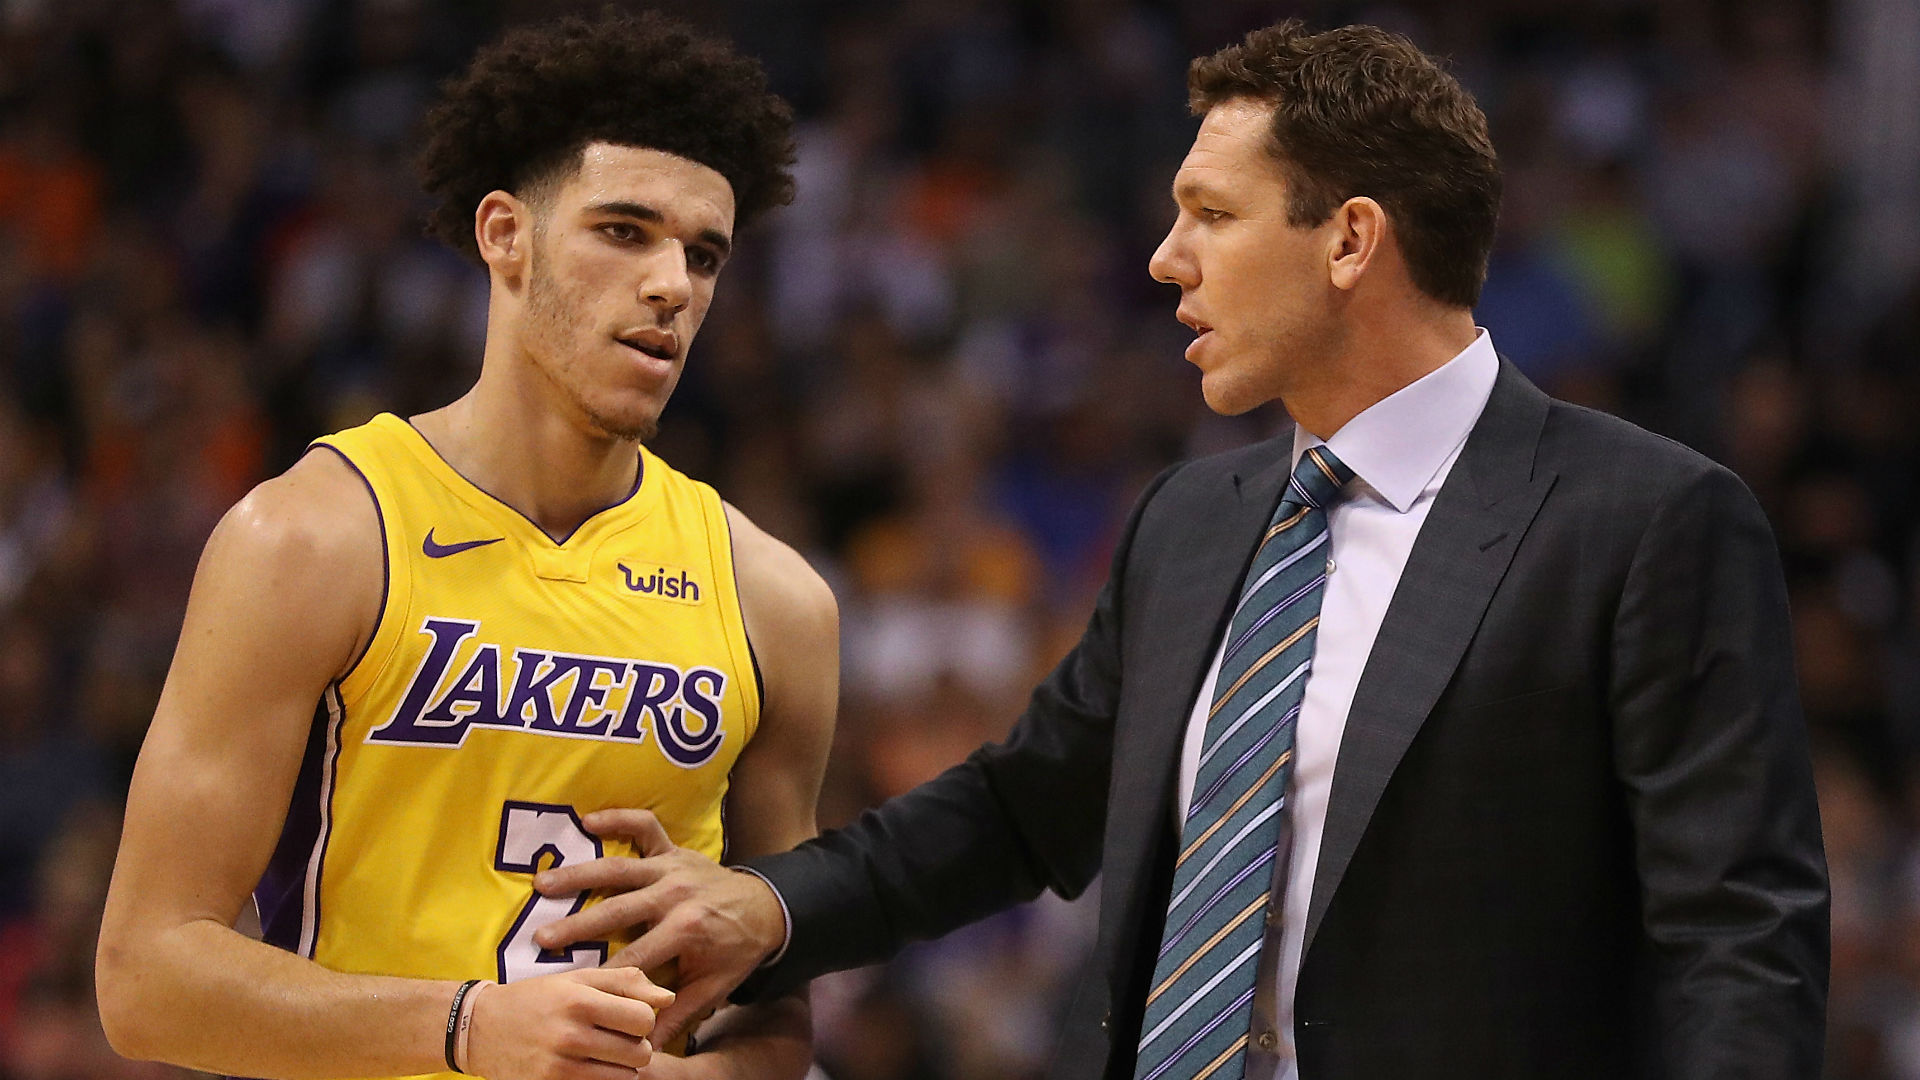 Luke Walton benches Lonzo Ball, other starters late in game to send message